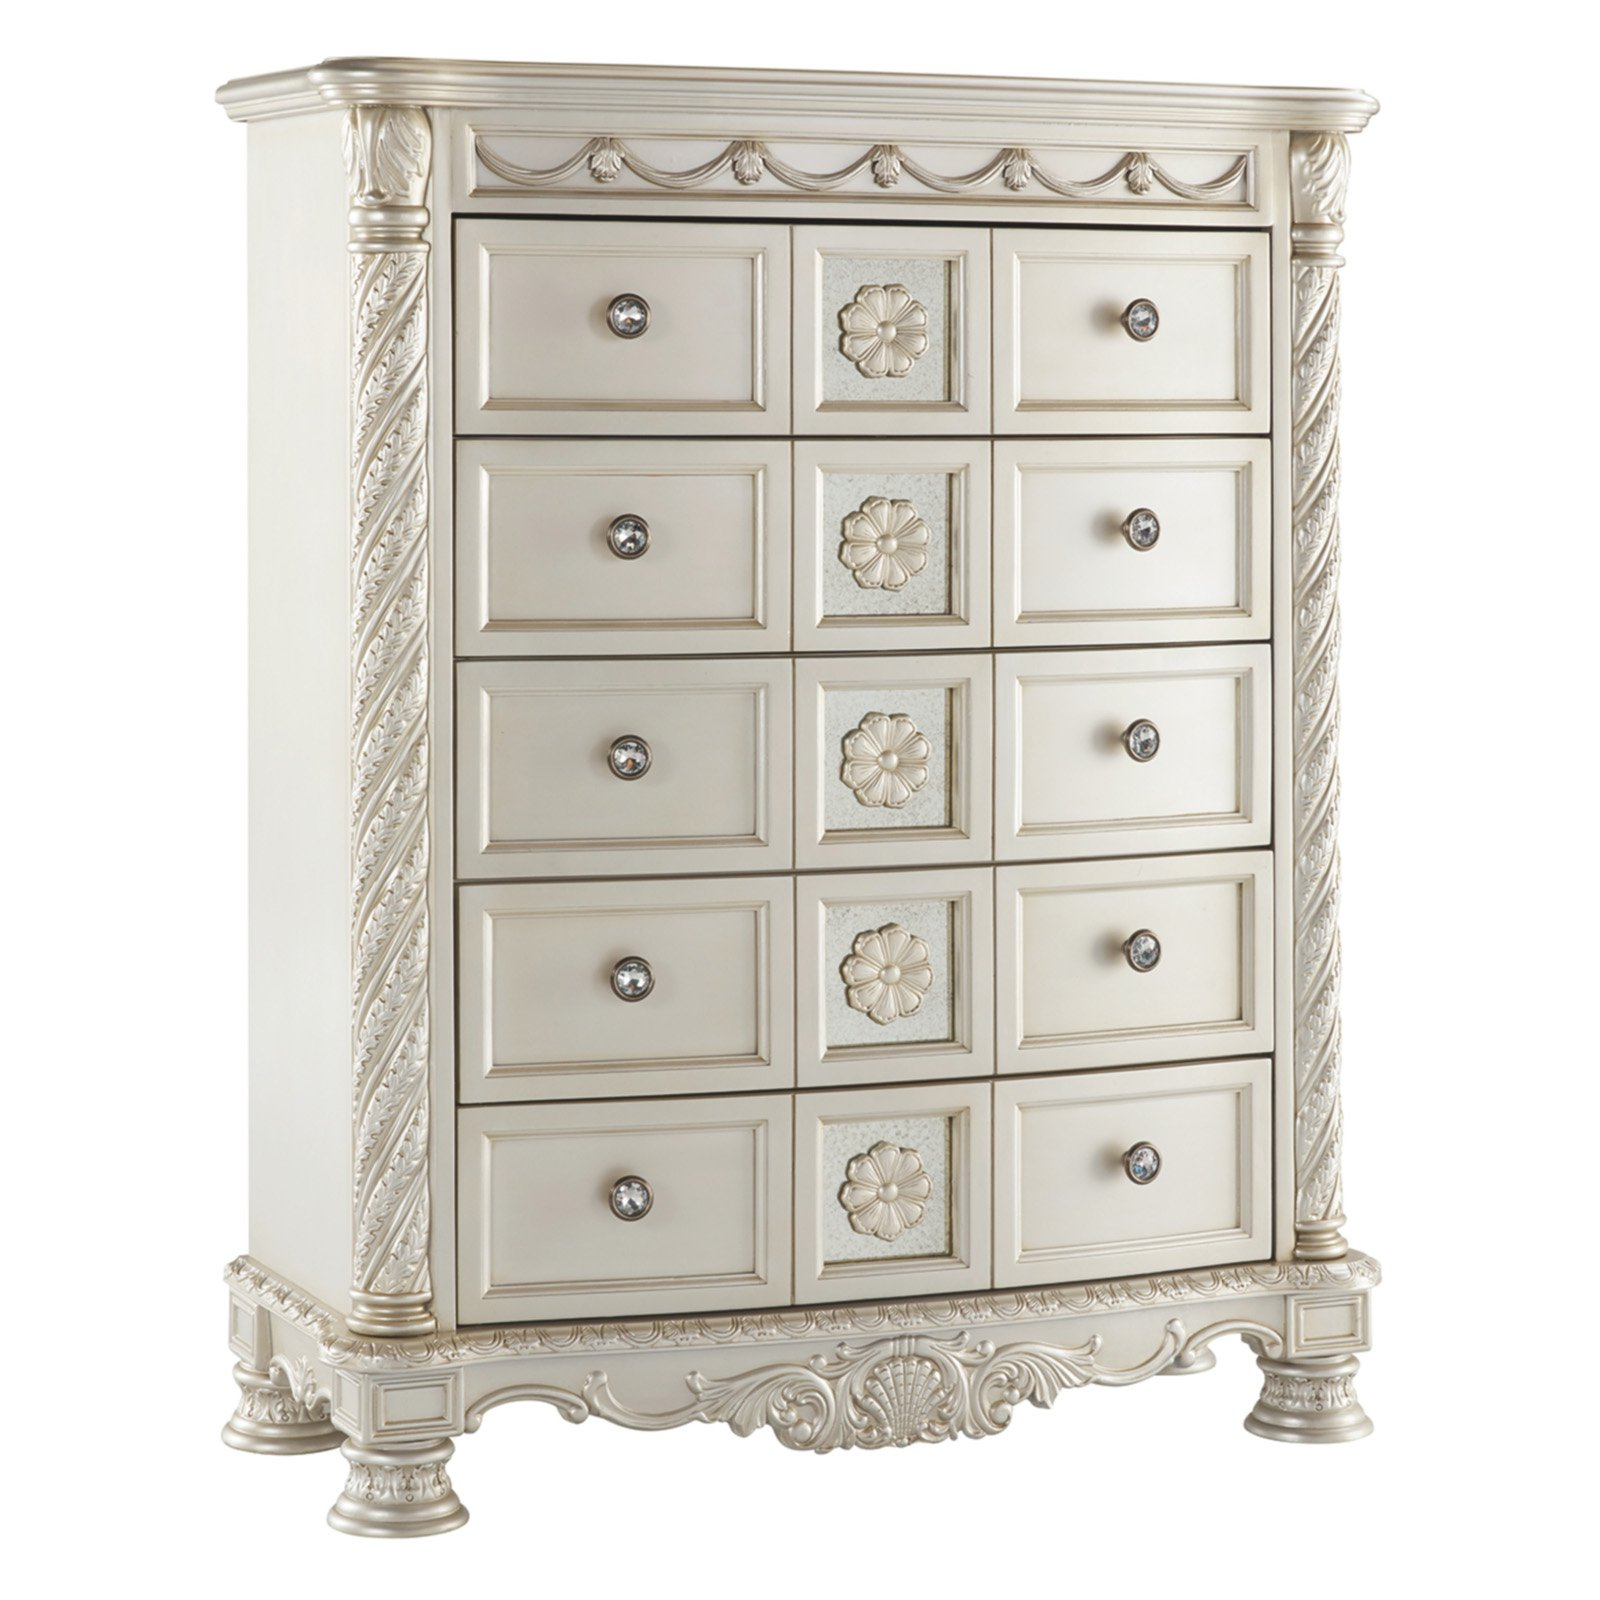 Signature Design by Ashley Cassimore 5 Drawer Chest